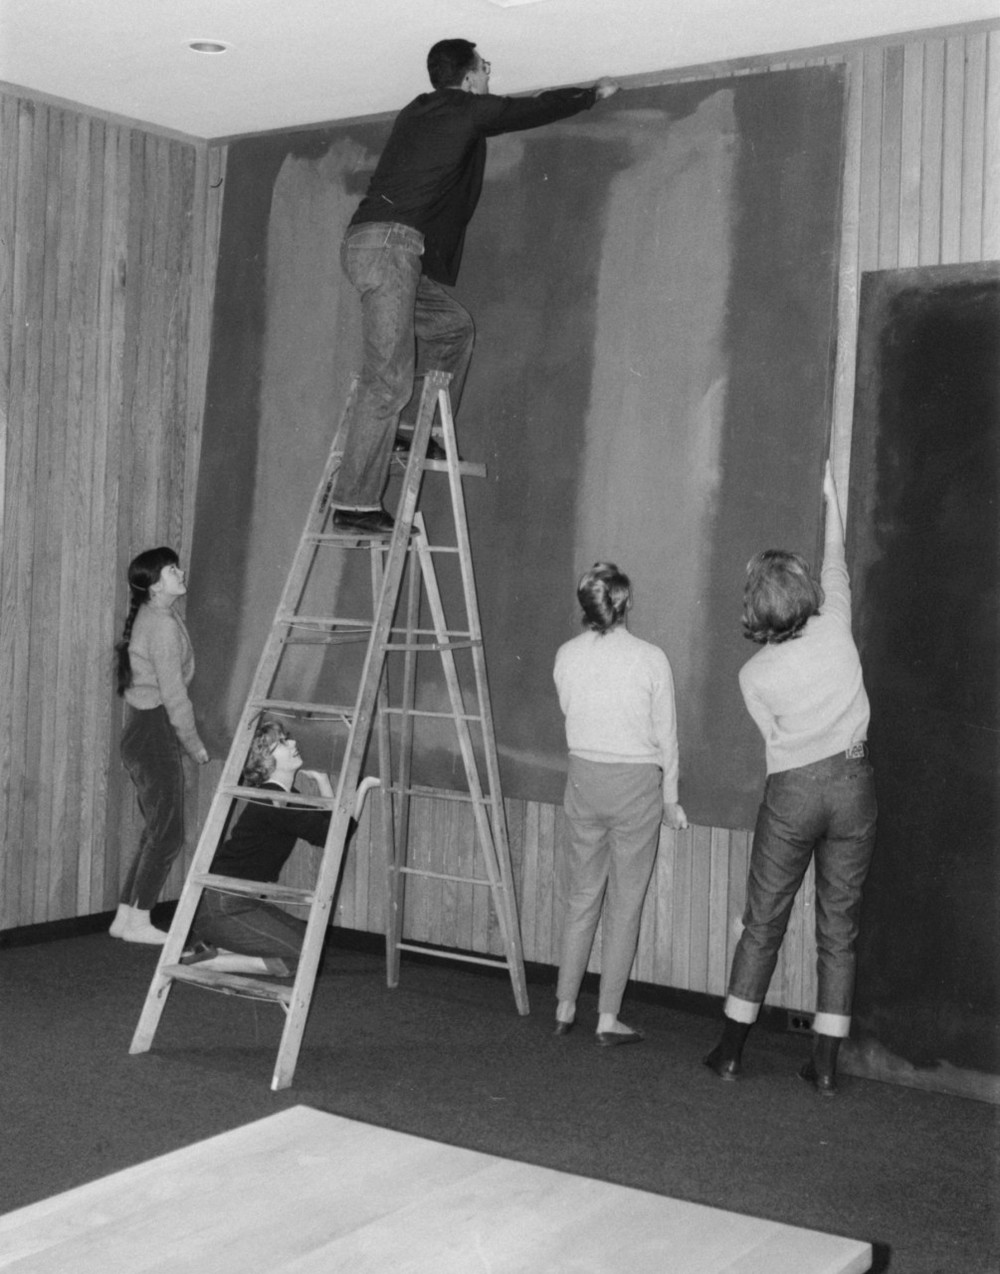 Students assisting with the hanging of Panel 1